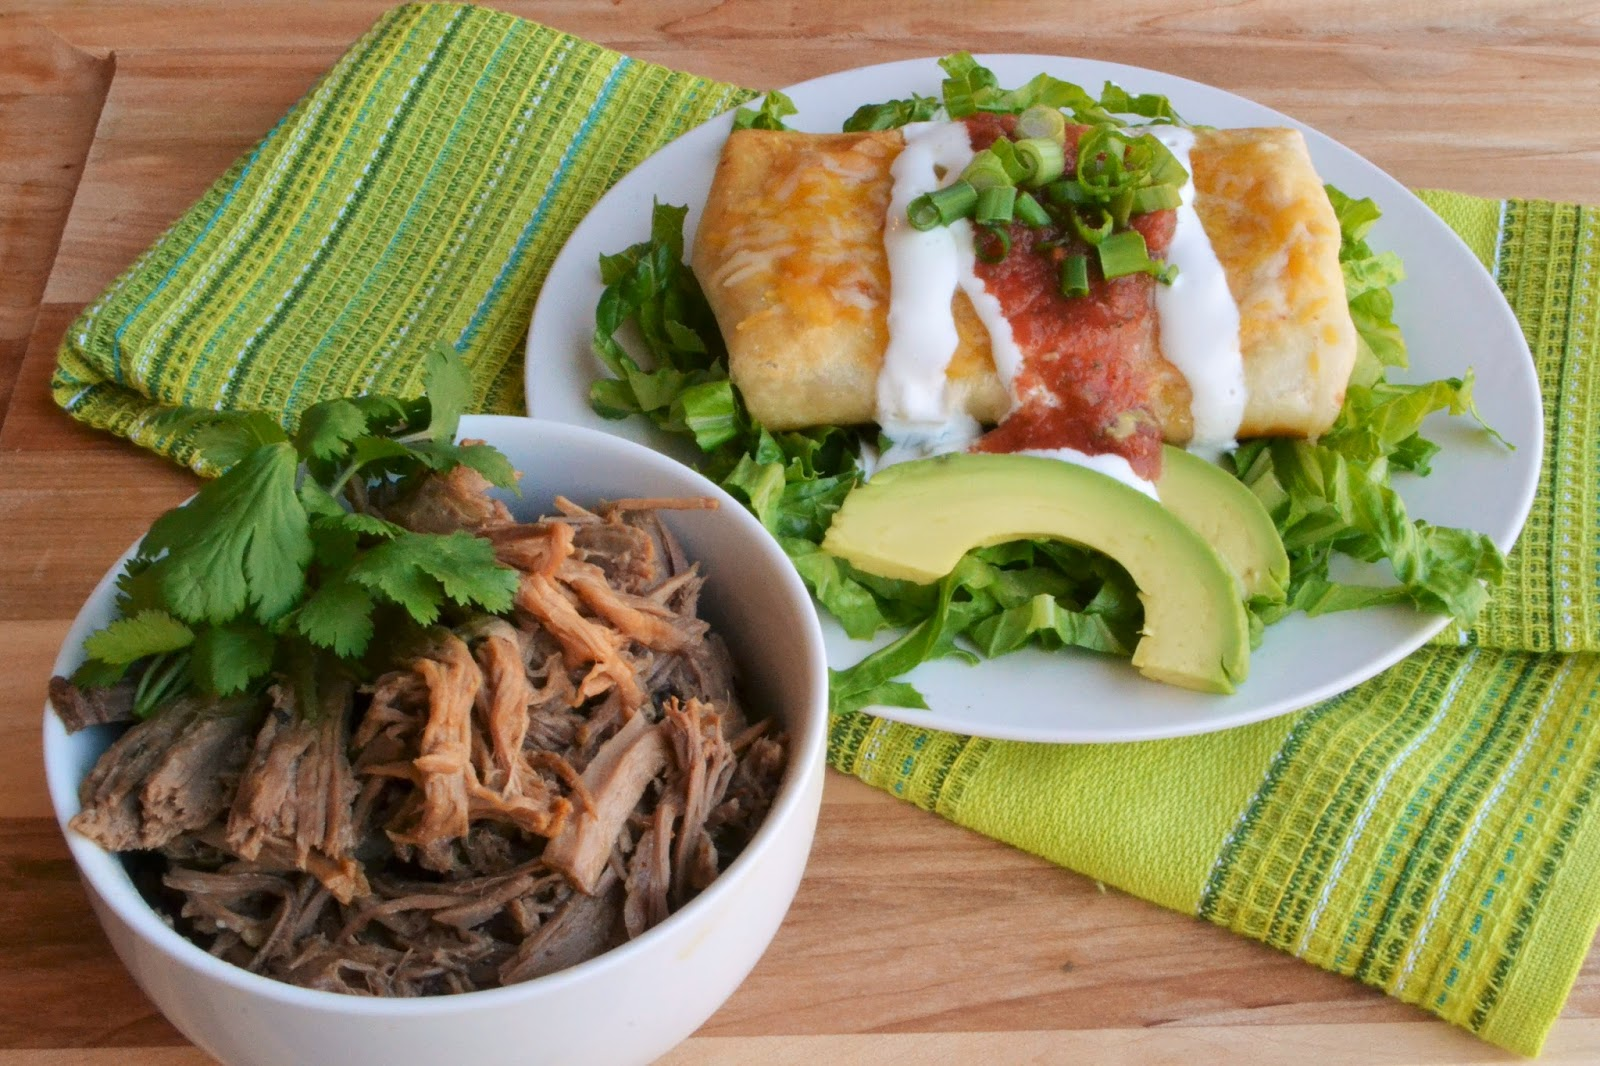 7kidsathome: Shredded Beef Chimichangas